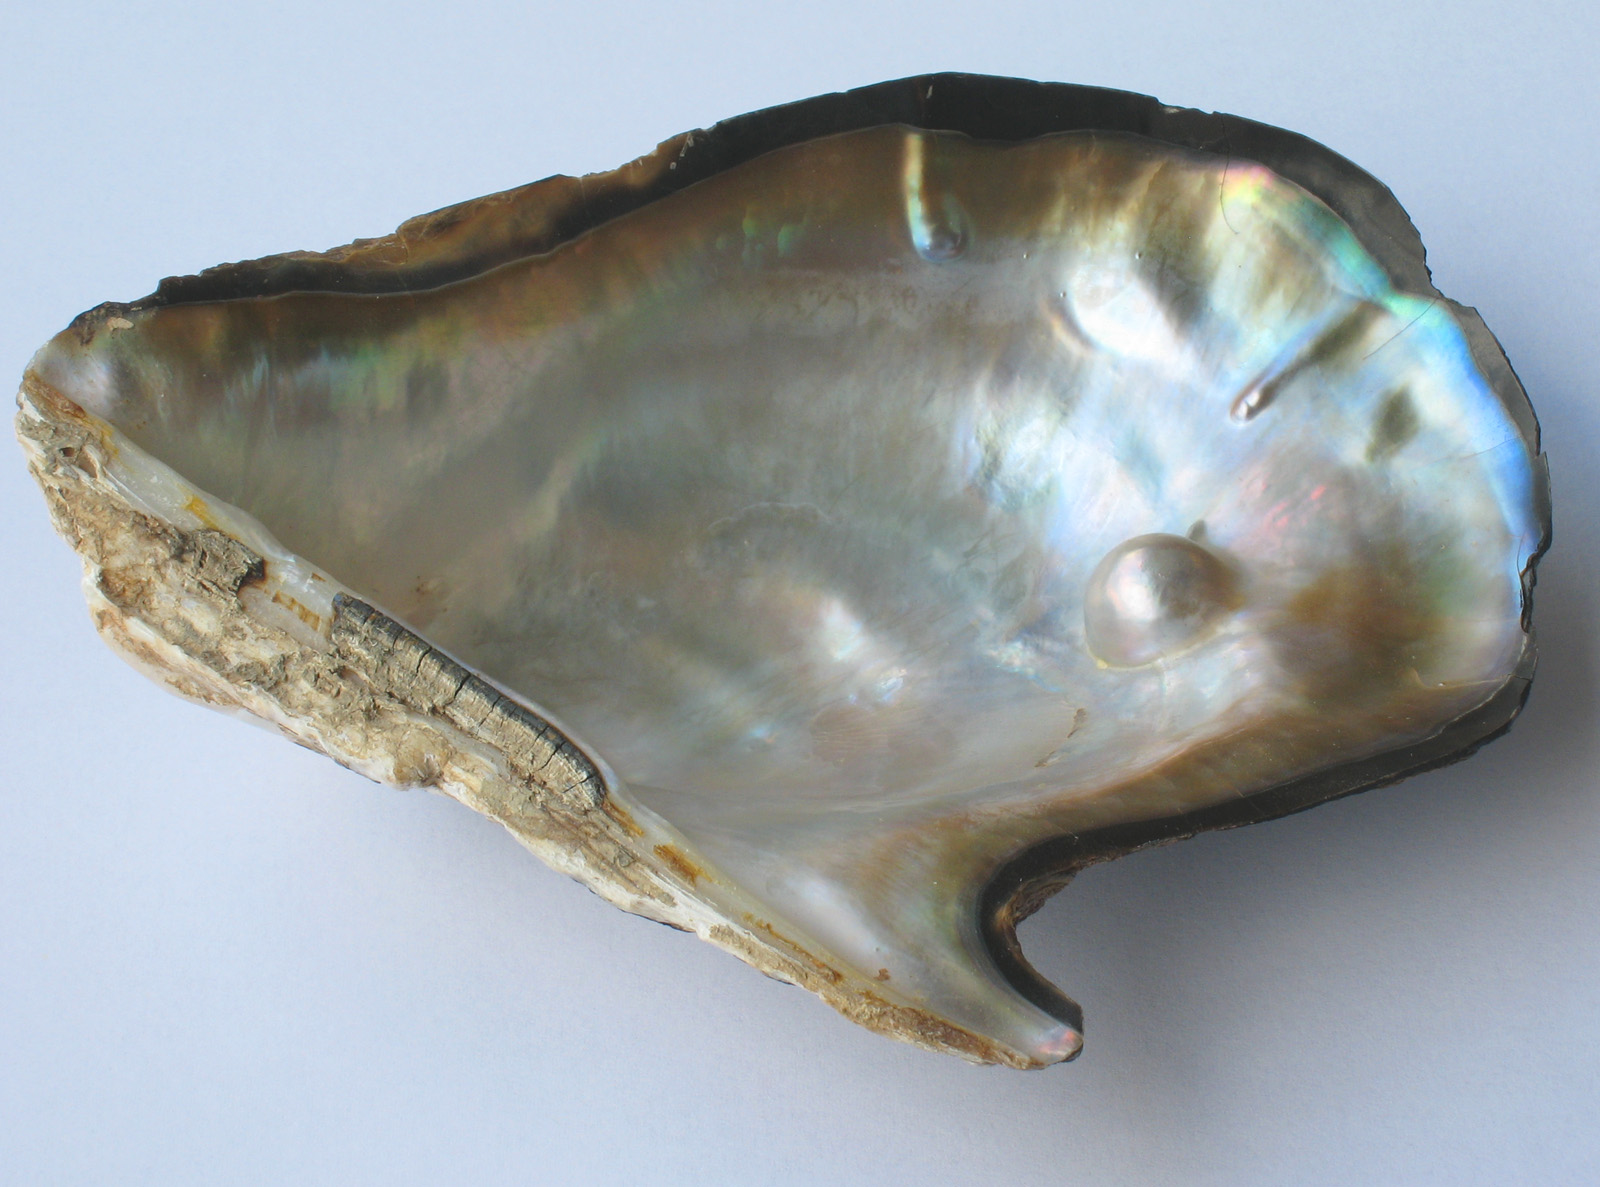 File:Pearl oyster.jpg - Wikipedia, the free encyclopedia